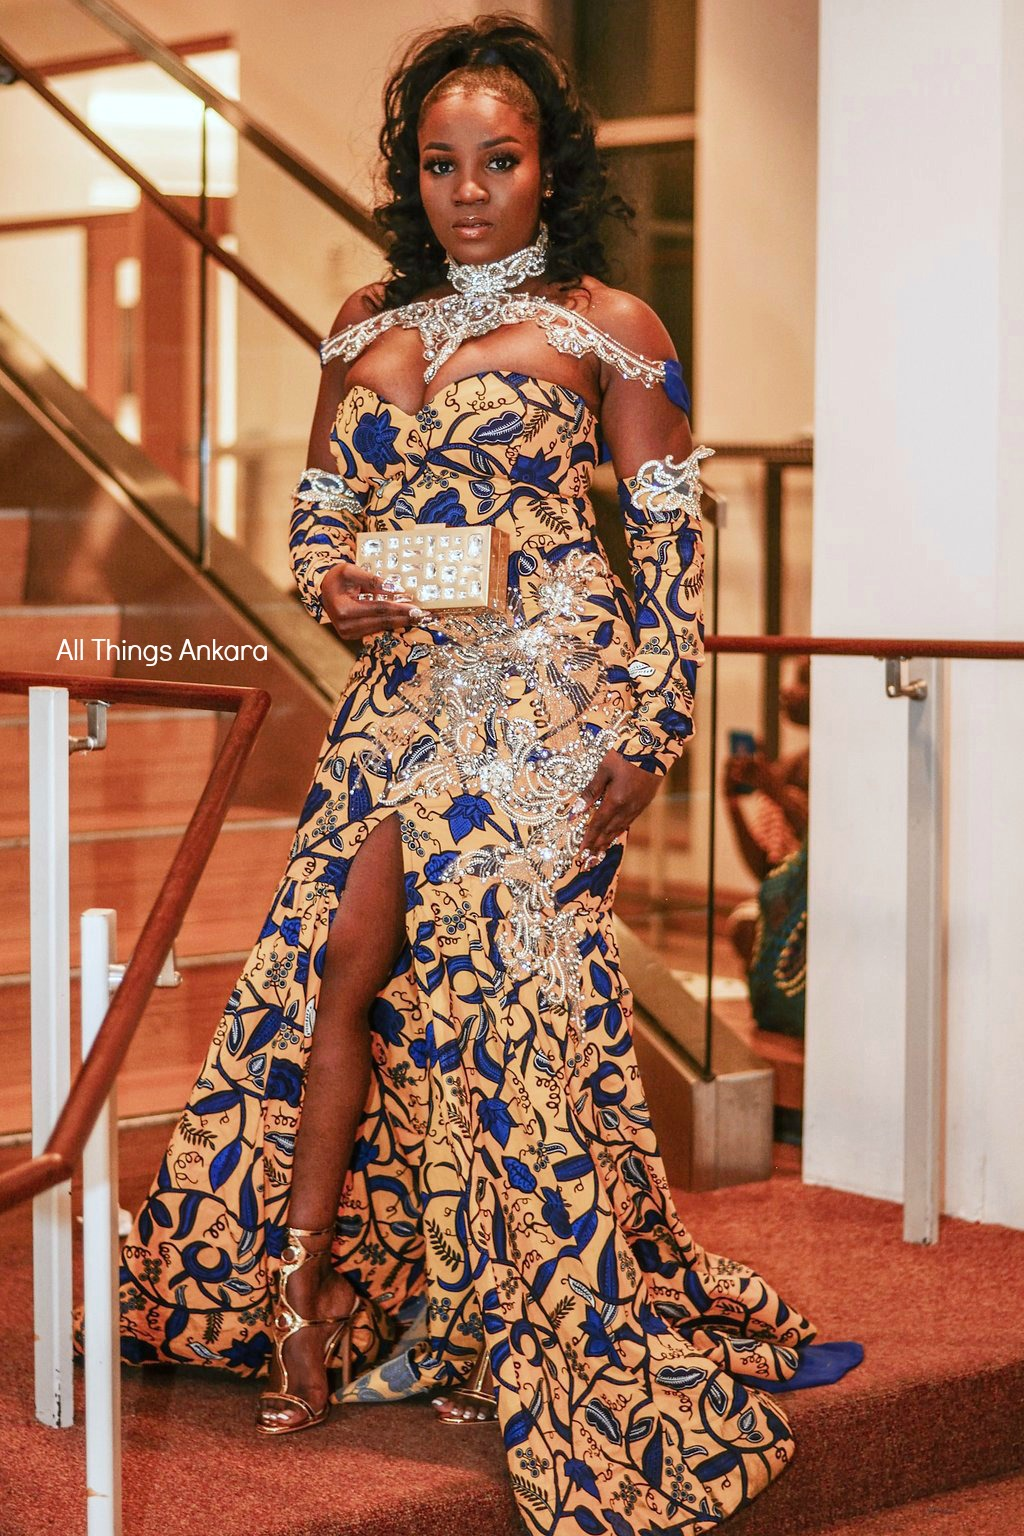 Gala All Things Ankara's Best Dressed Women at Africa Gives Back International Gala 2018 20